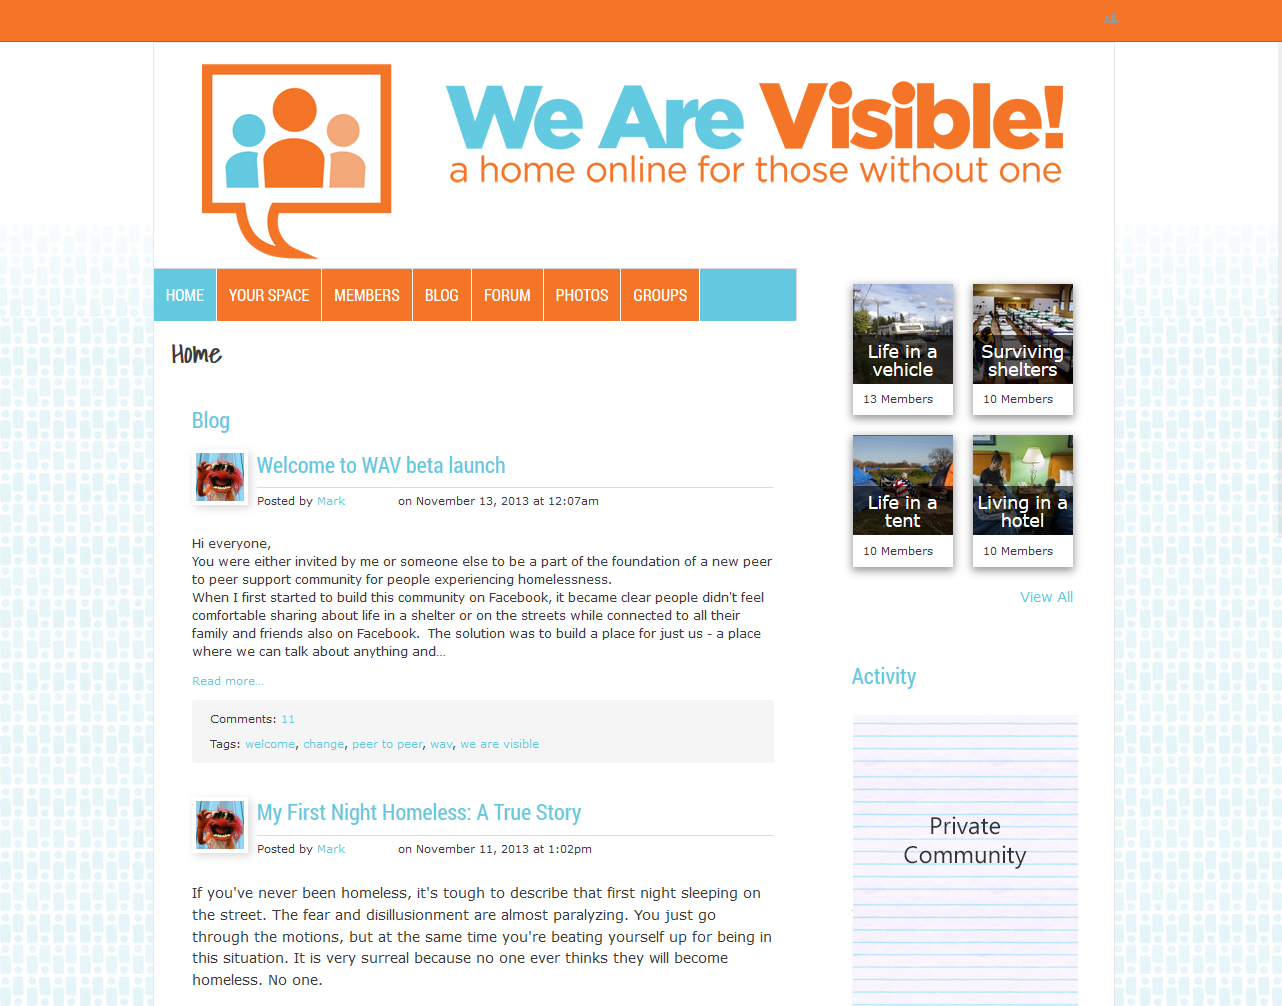 We Are Visible - Ning 3.0 Design